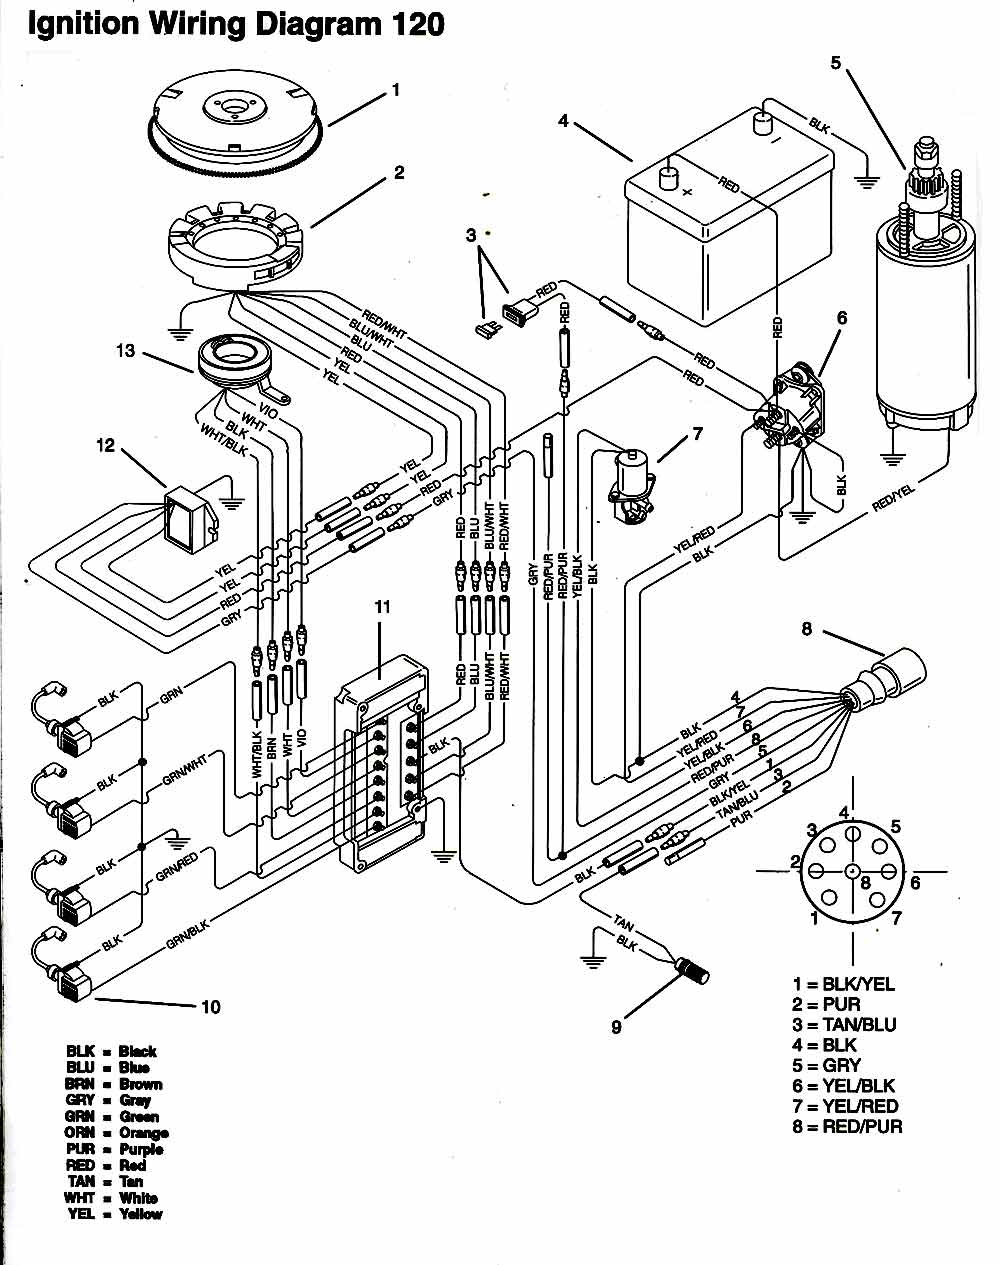 04 Mustang V6 Engine Diagram together with 95 Ford Probe Wiring Diagram as well Ford Aerostar 4 0 1990 Specs And Images moreover 94 Ford Explorer Vacuum Line Diagram furthermore Wiring Diagram For 94 Ford Aerostar. on 94 ford aerostar van